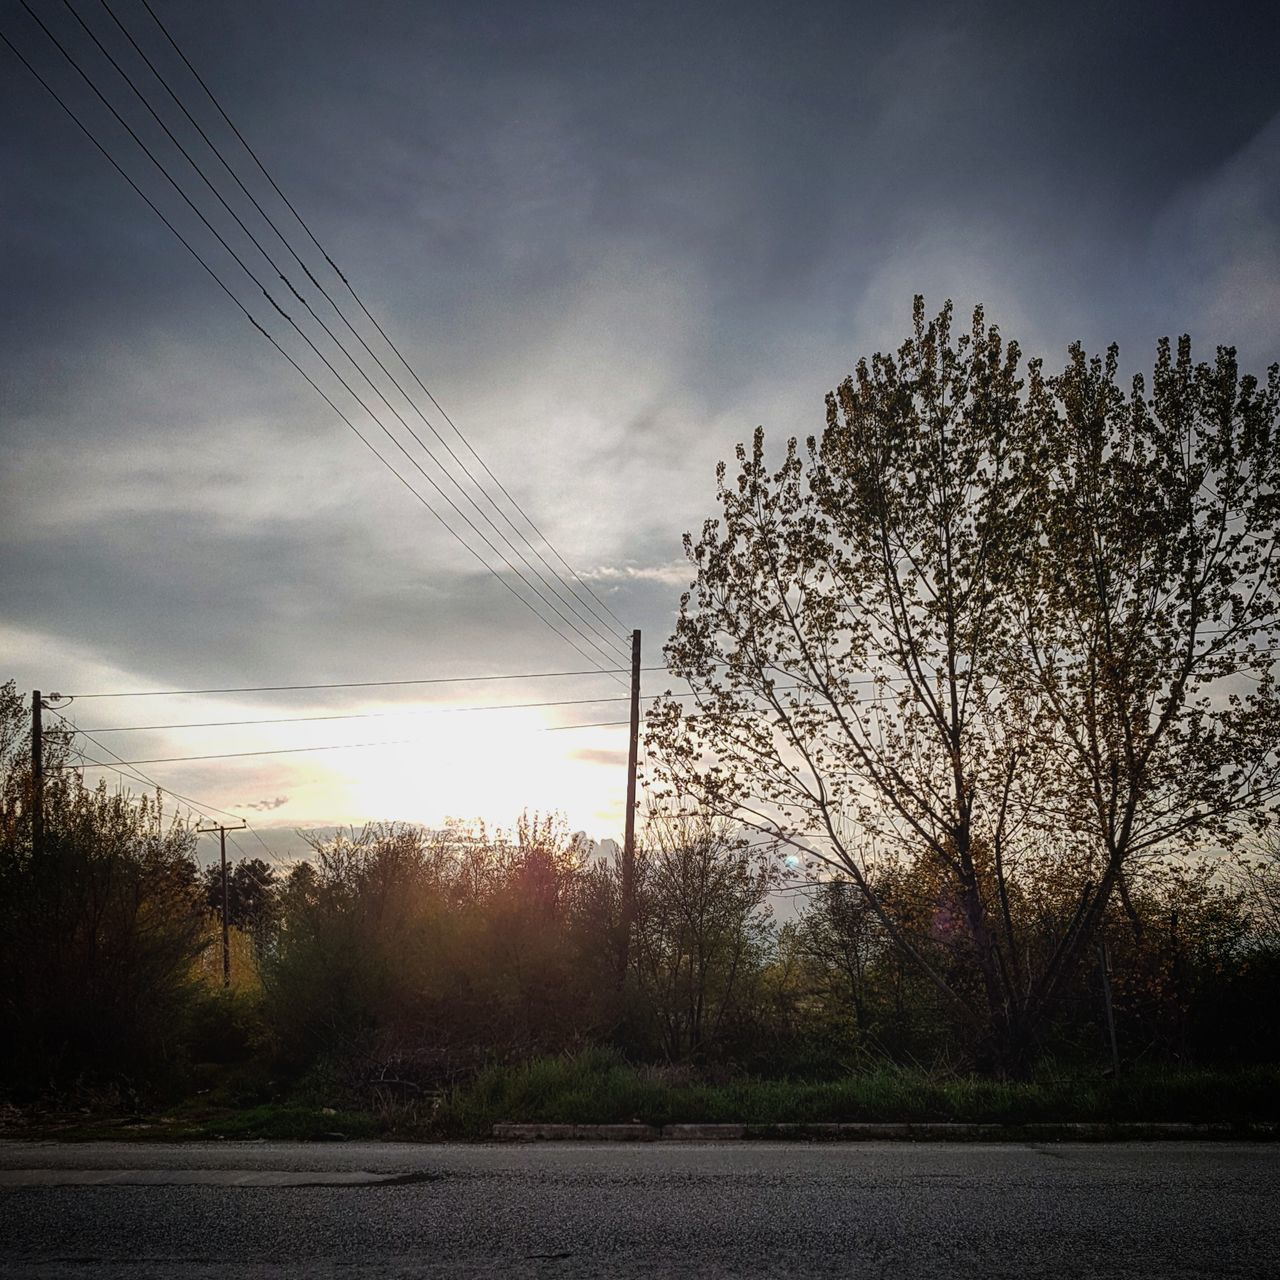 tree, sky, no people, cloud - sky, outdoors, nature, road, beauty in nature, day, scenics, landscape